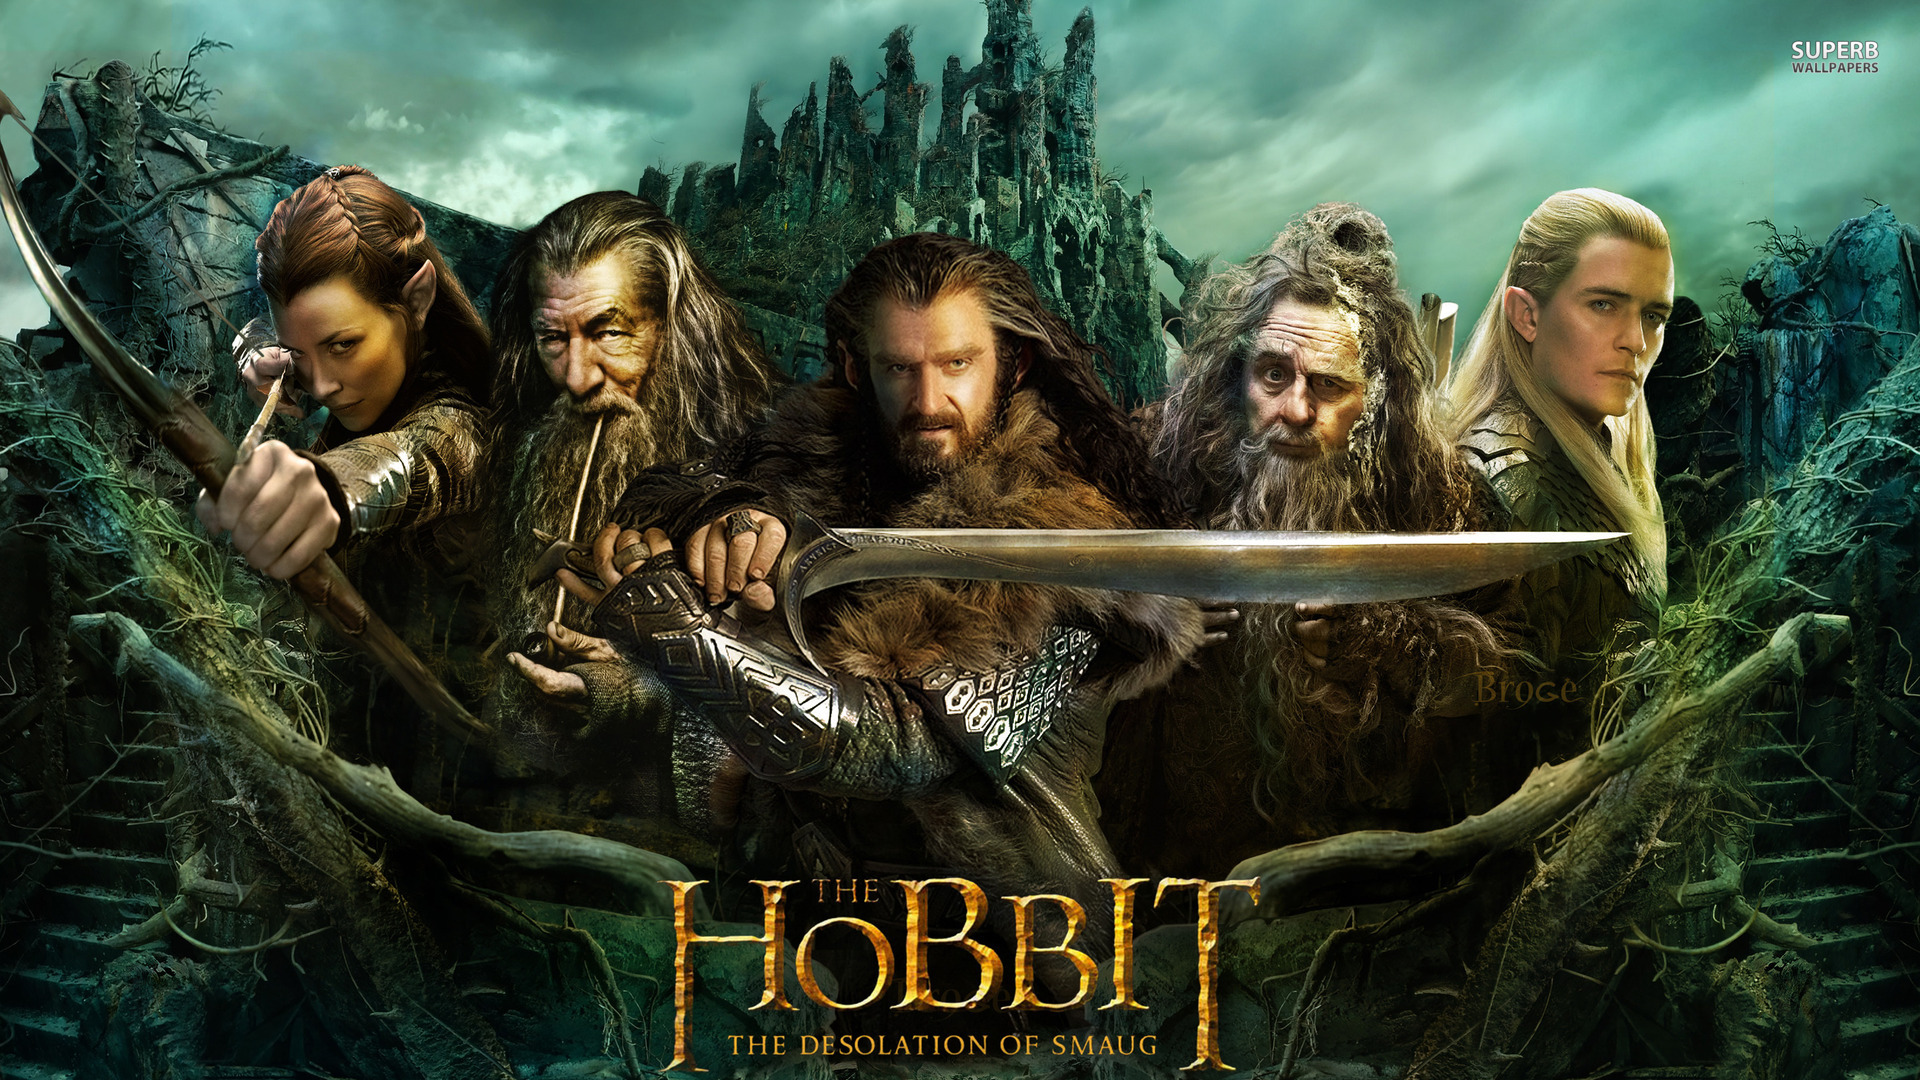 The Hobbit The Desolation Of Smaug Wallpapers Movie Hq The Hobbit The Desolation Of Smaug Pictures 4k Wallpapers 2019